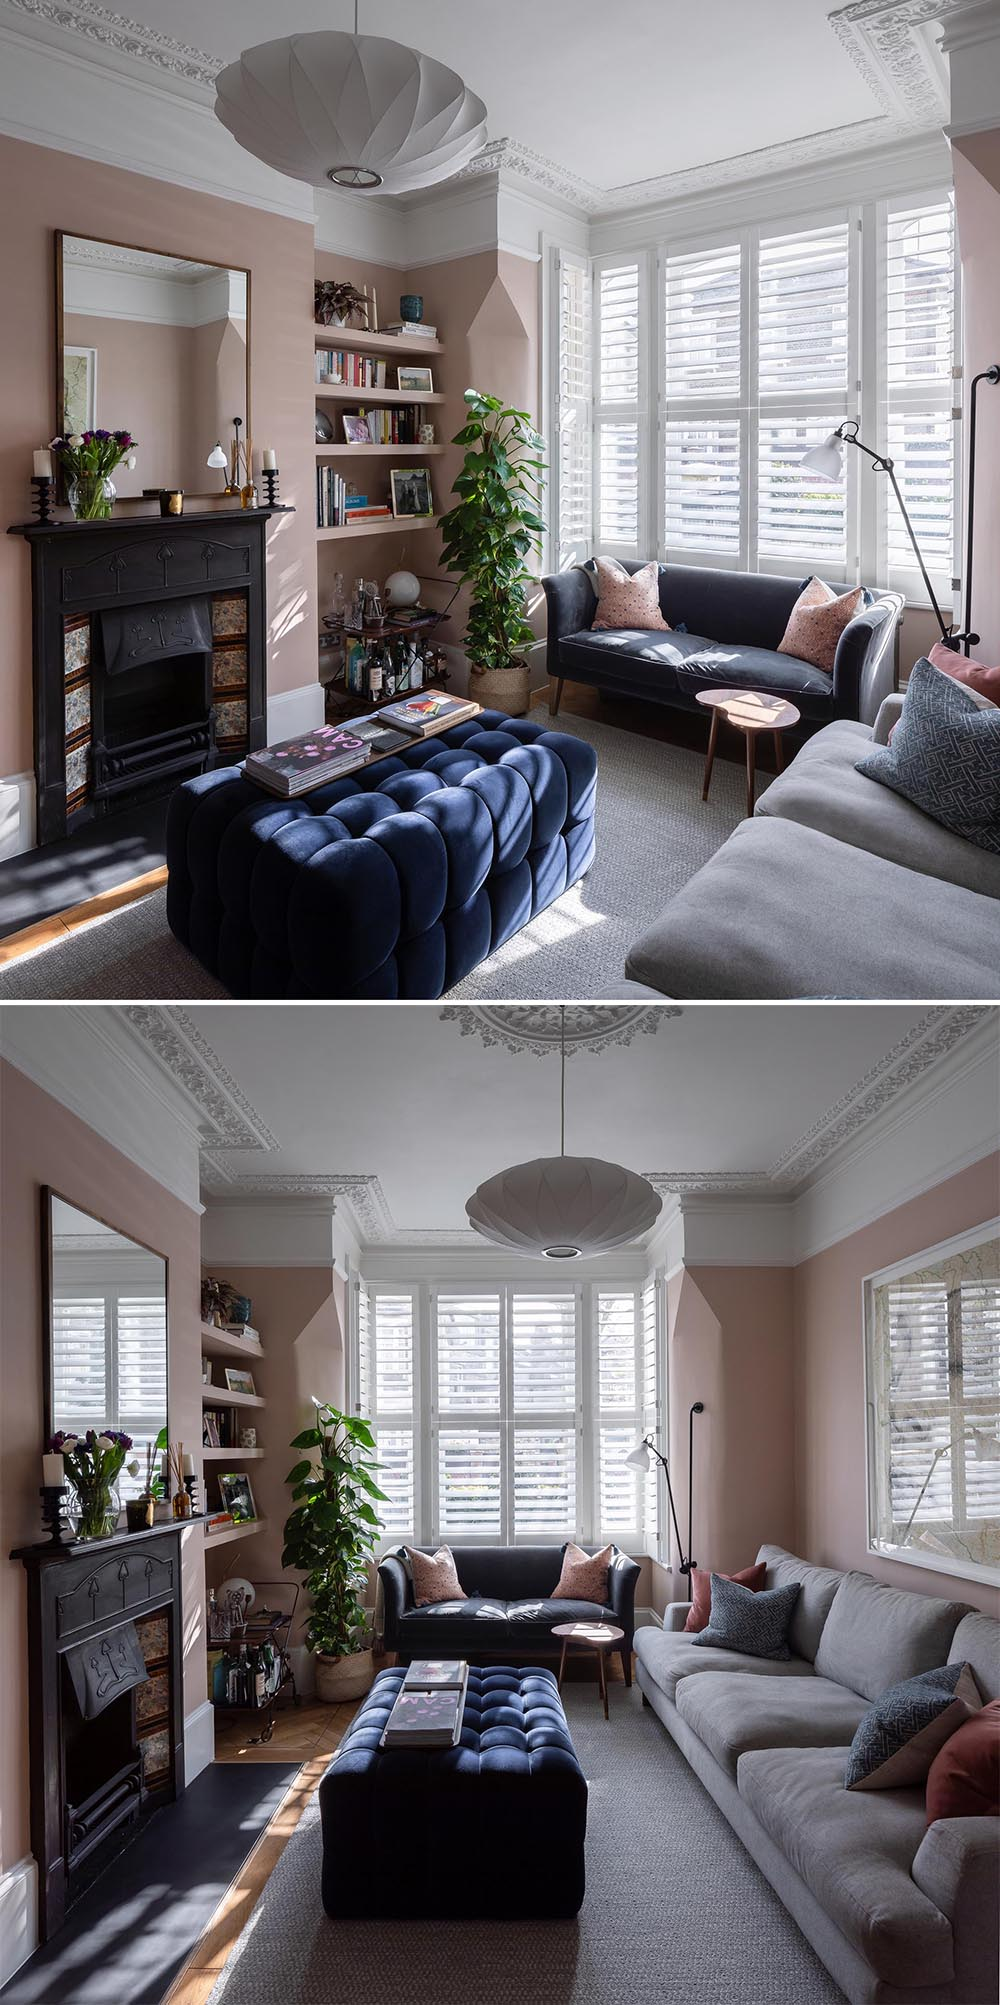 A living room with blush pink walls, contemporary furniture, built-in shelving, and a fireplace.